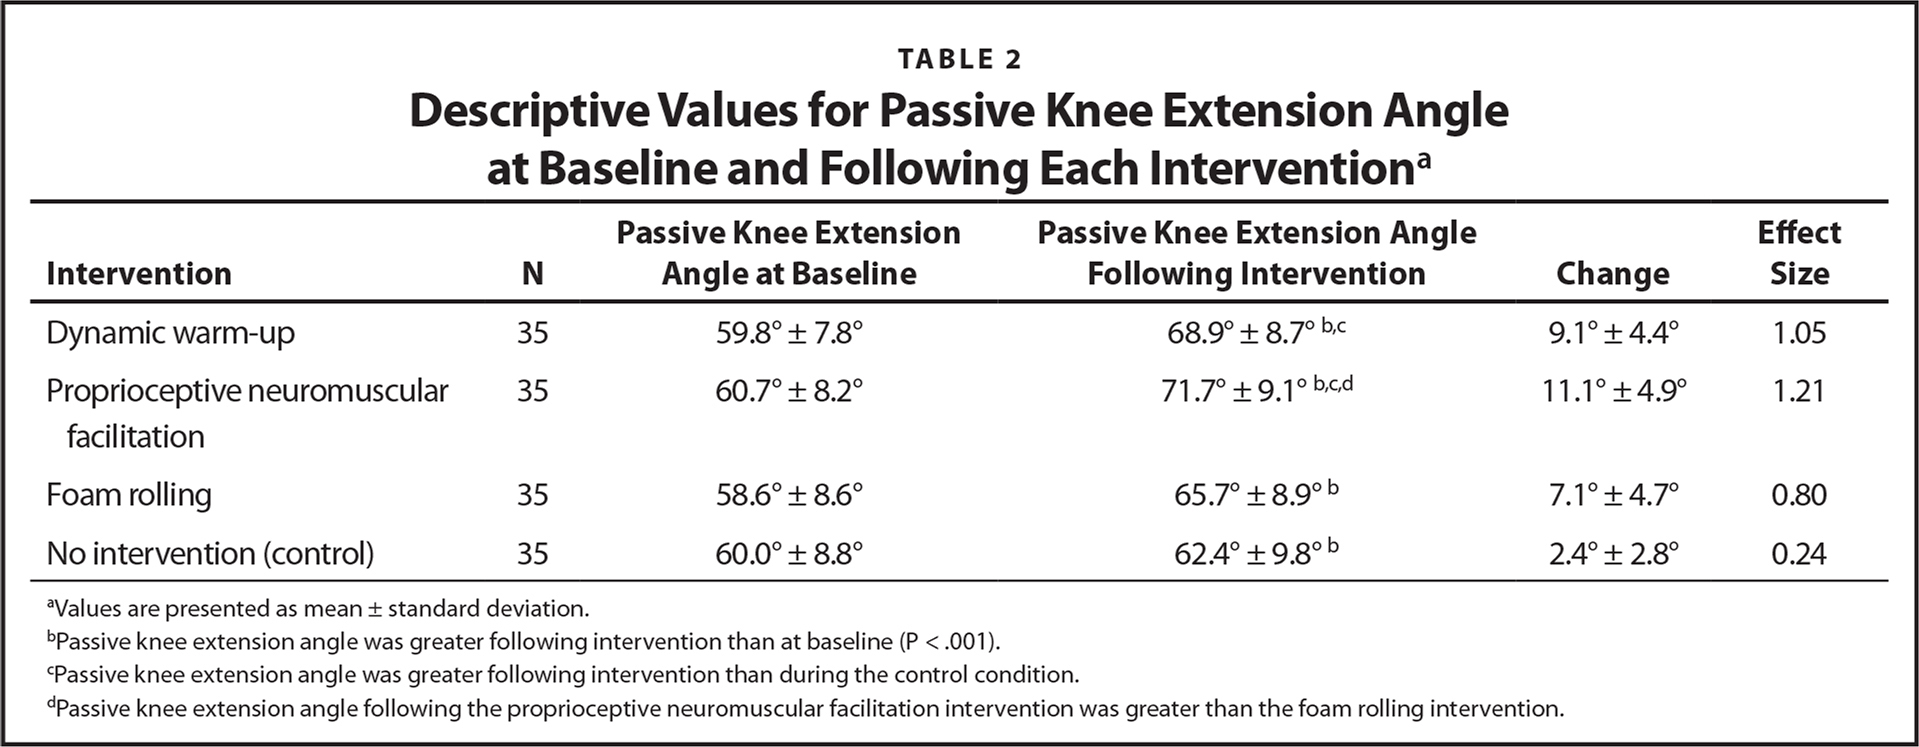 Descriptive Values for Passive Knee Extension Angle at Baseline and Following Each Interventiona